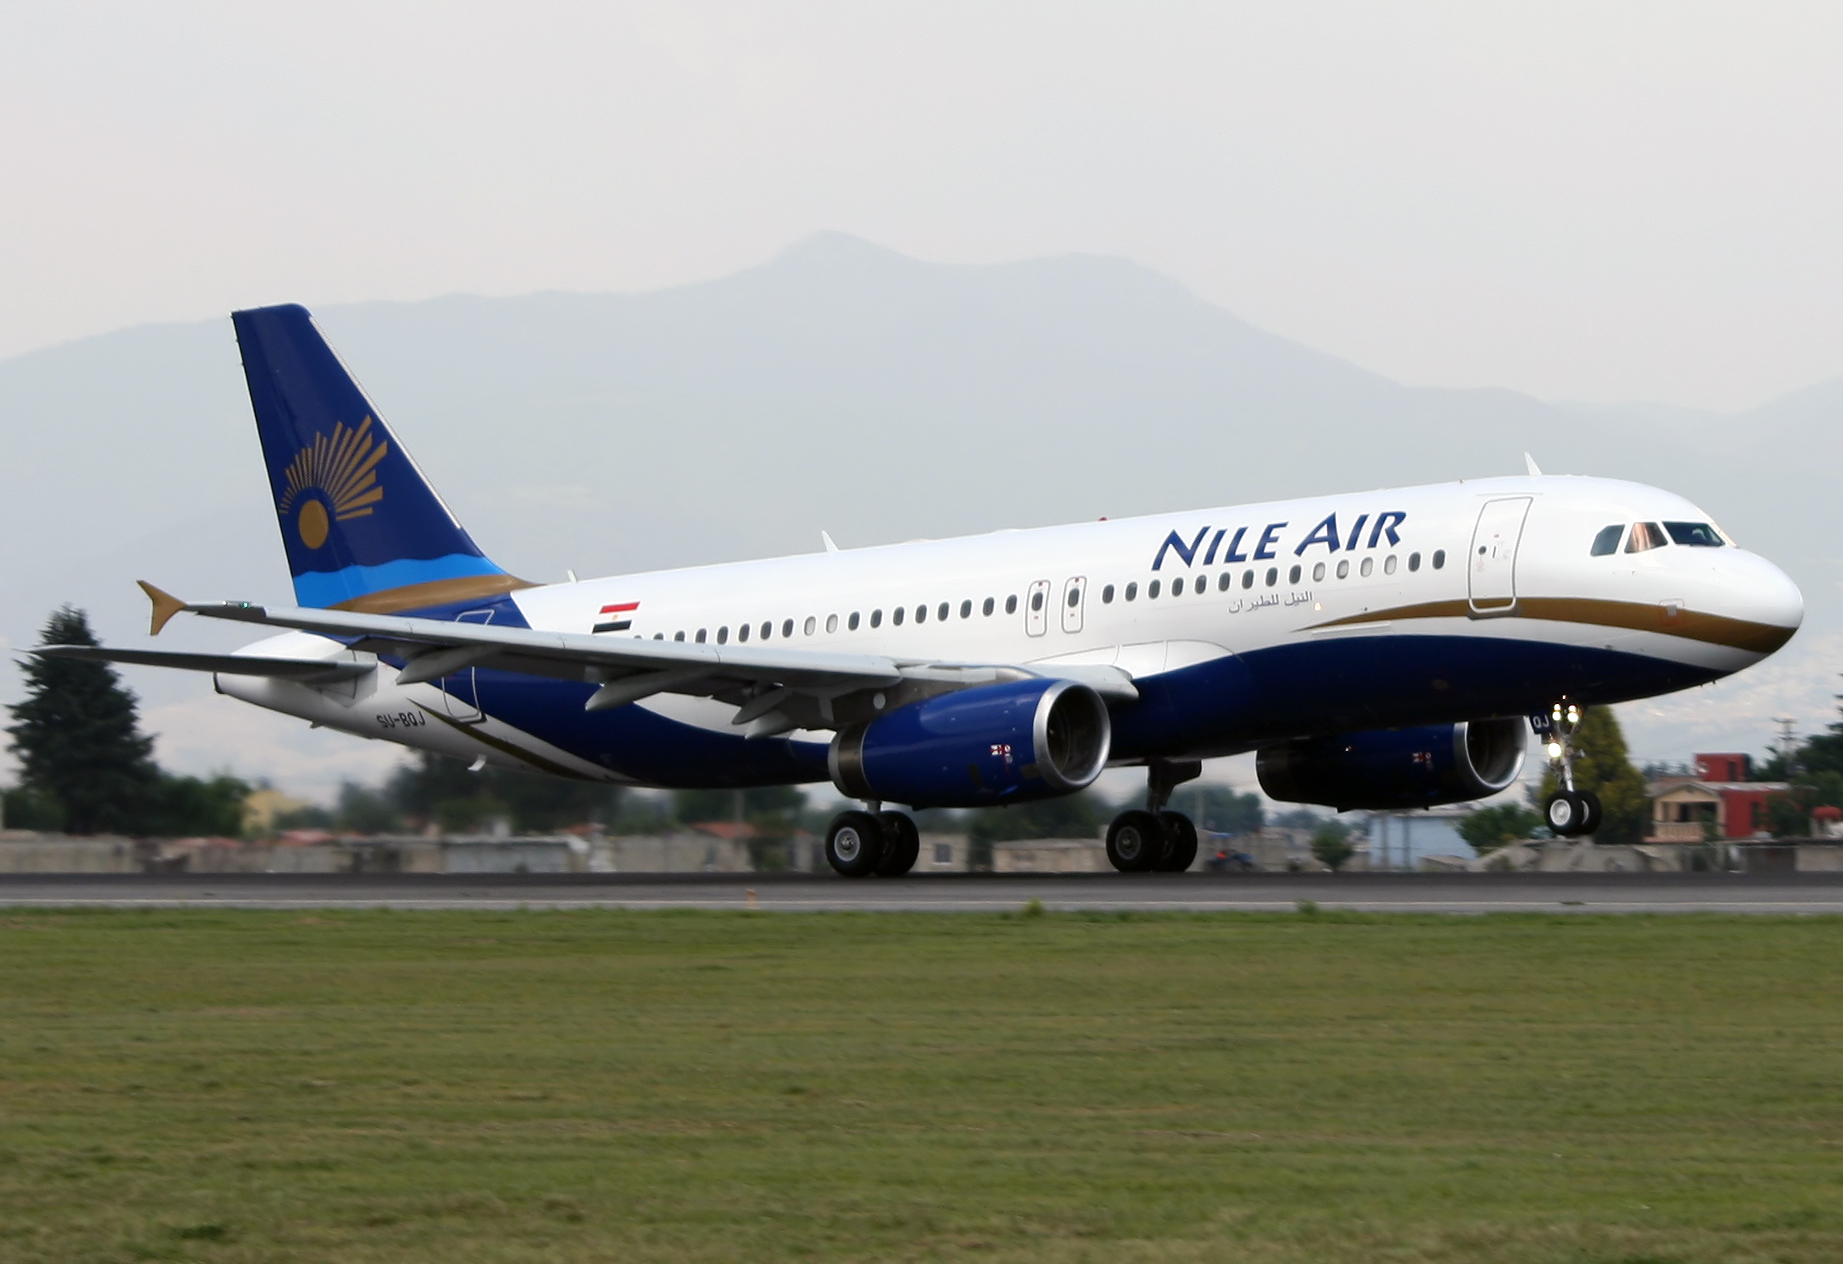 Nile Air starts operations to Al Ain International Airport